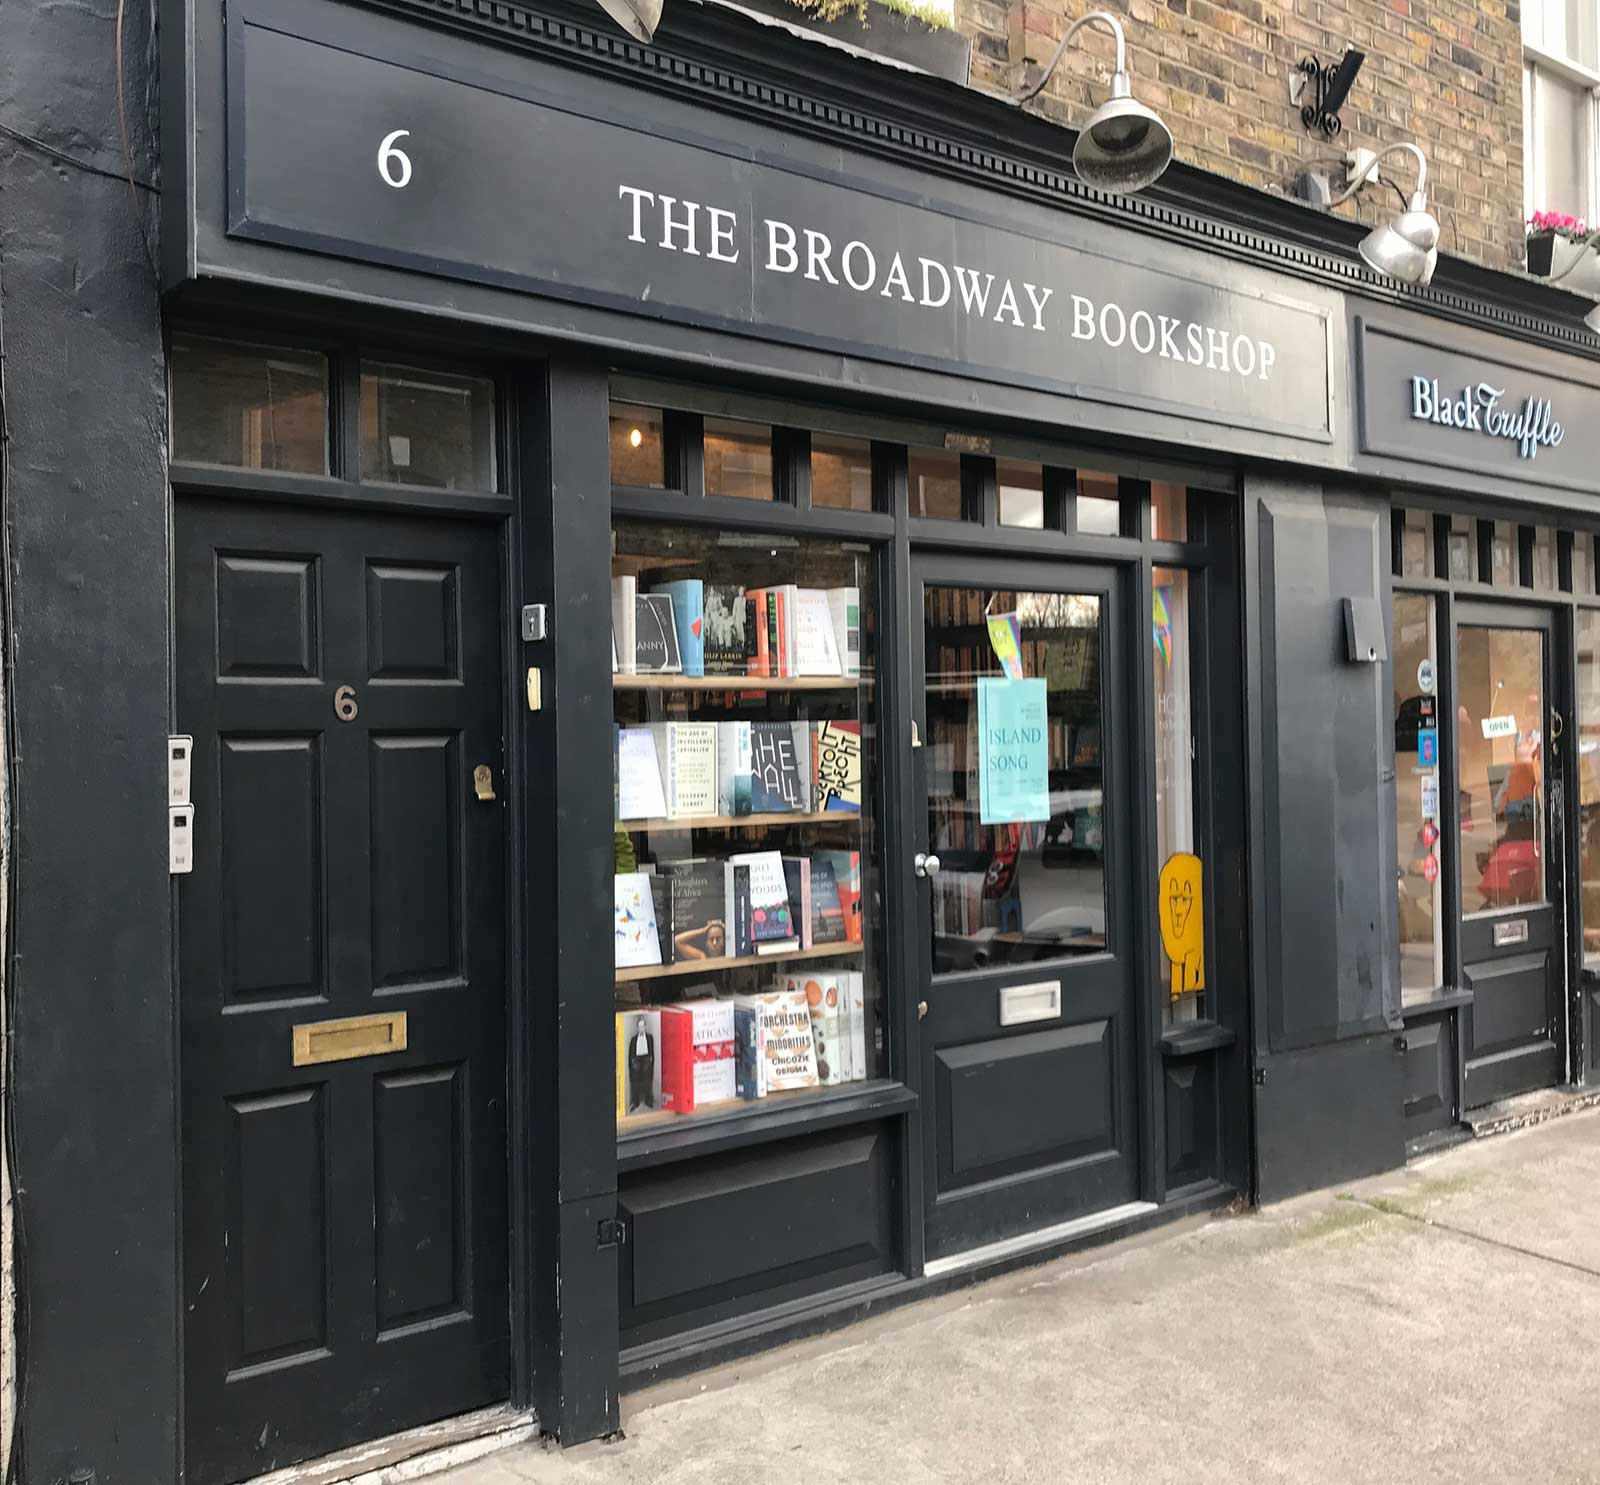 Broadway Bookshop London Fields